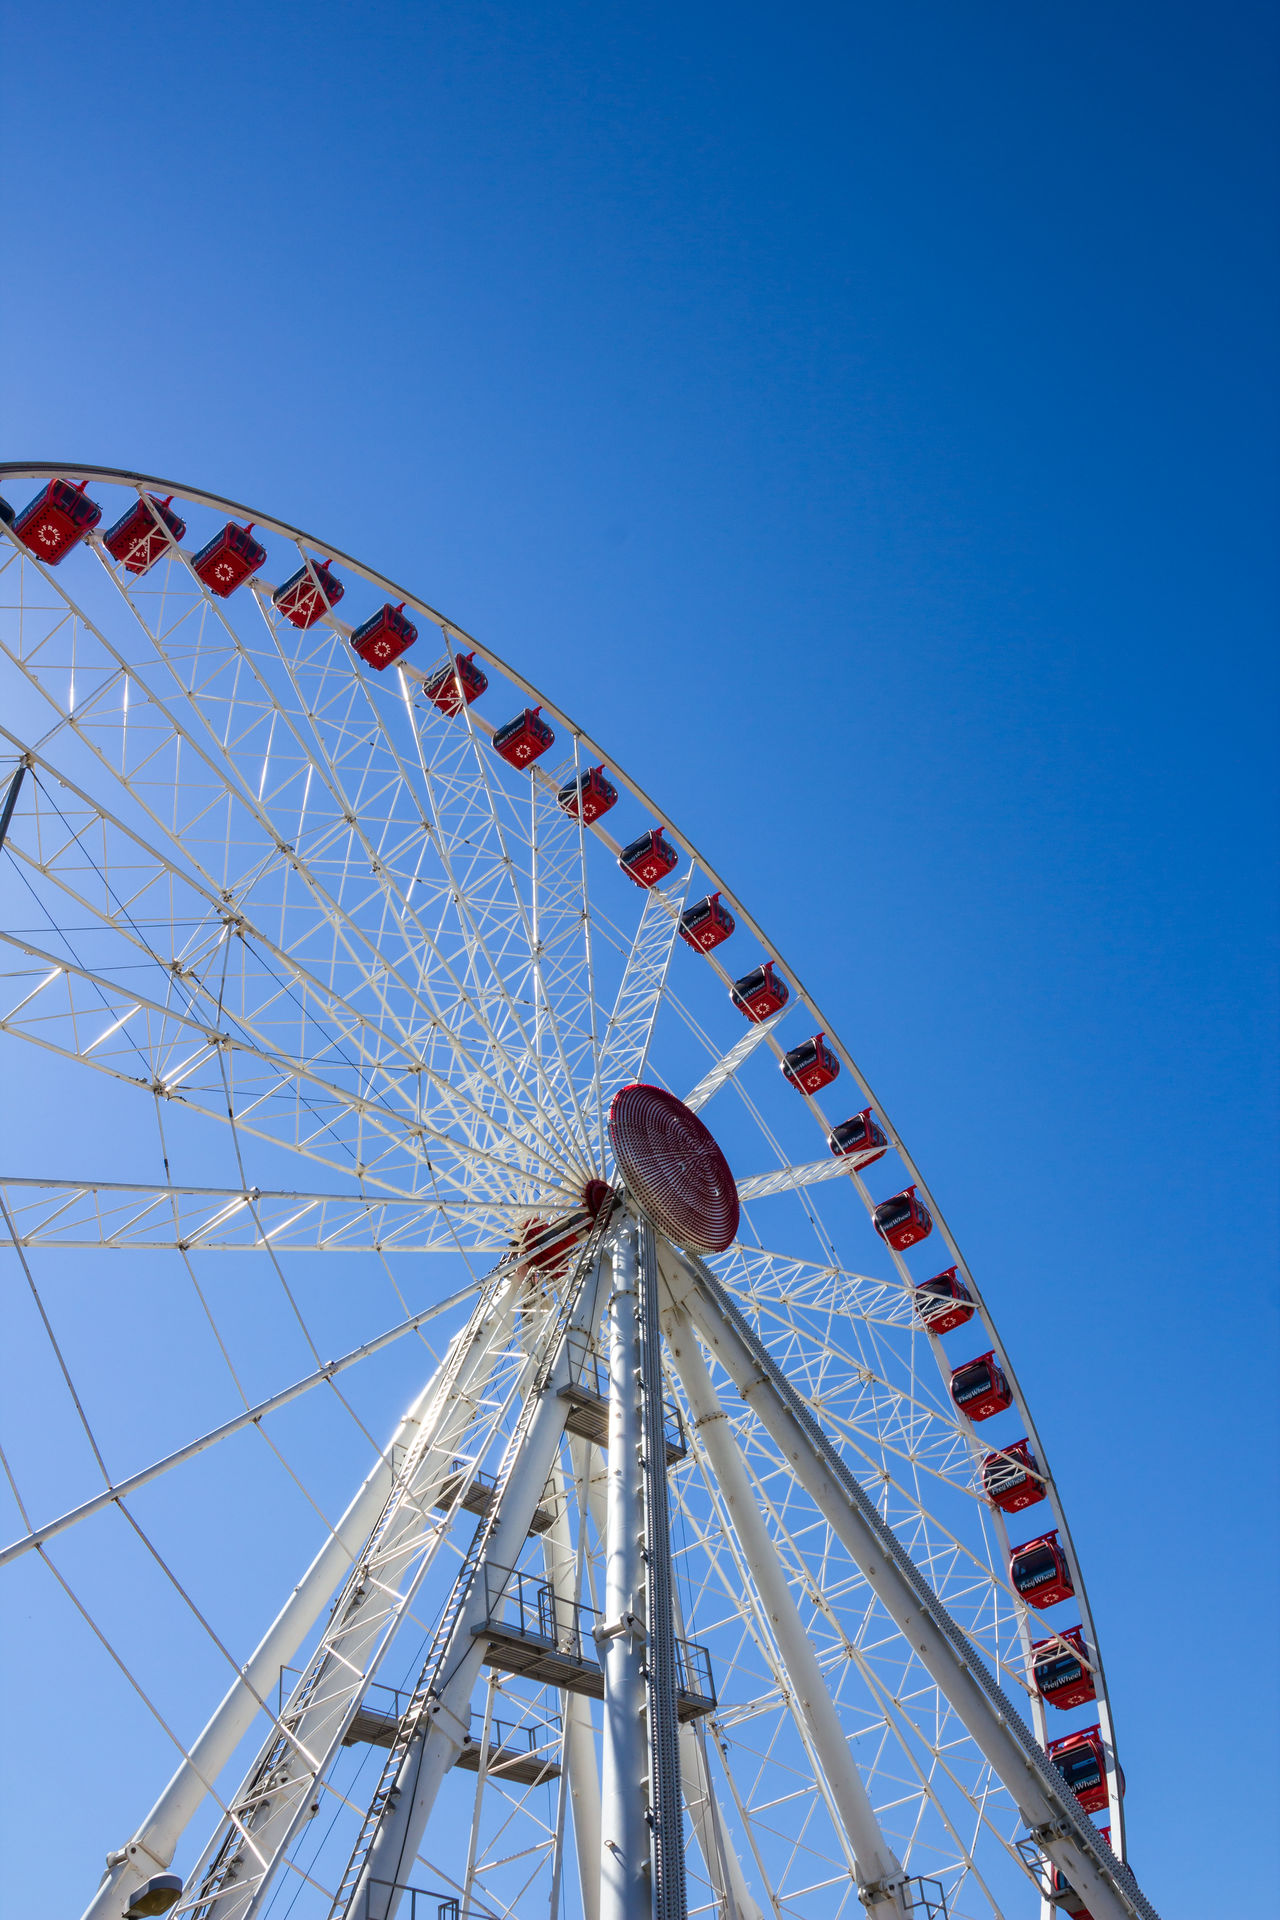 Jesolo, Italy, July 19 2016: ferris wheel on blue sky background. Amusement  Background BIG Blue Bottom Carnival Carousel Circle Color Colorful Day Enjoy Entertainment Fair Fairground Ferris Festival Fun High Holiday Joy Leisure Outdoor Park Red